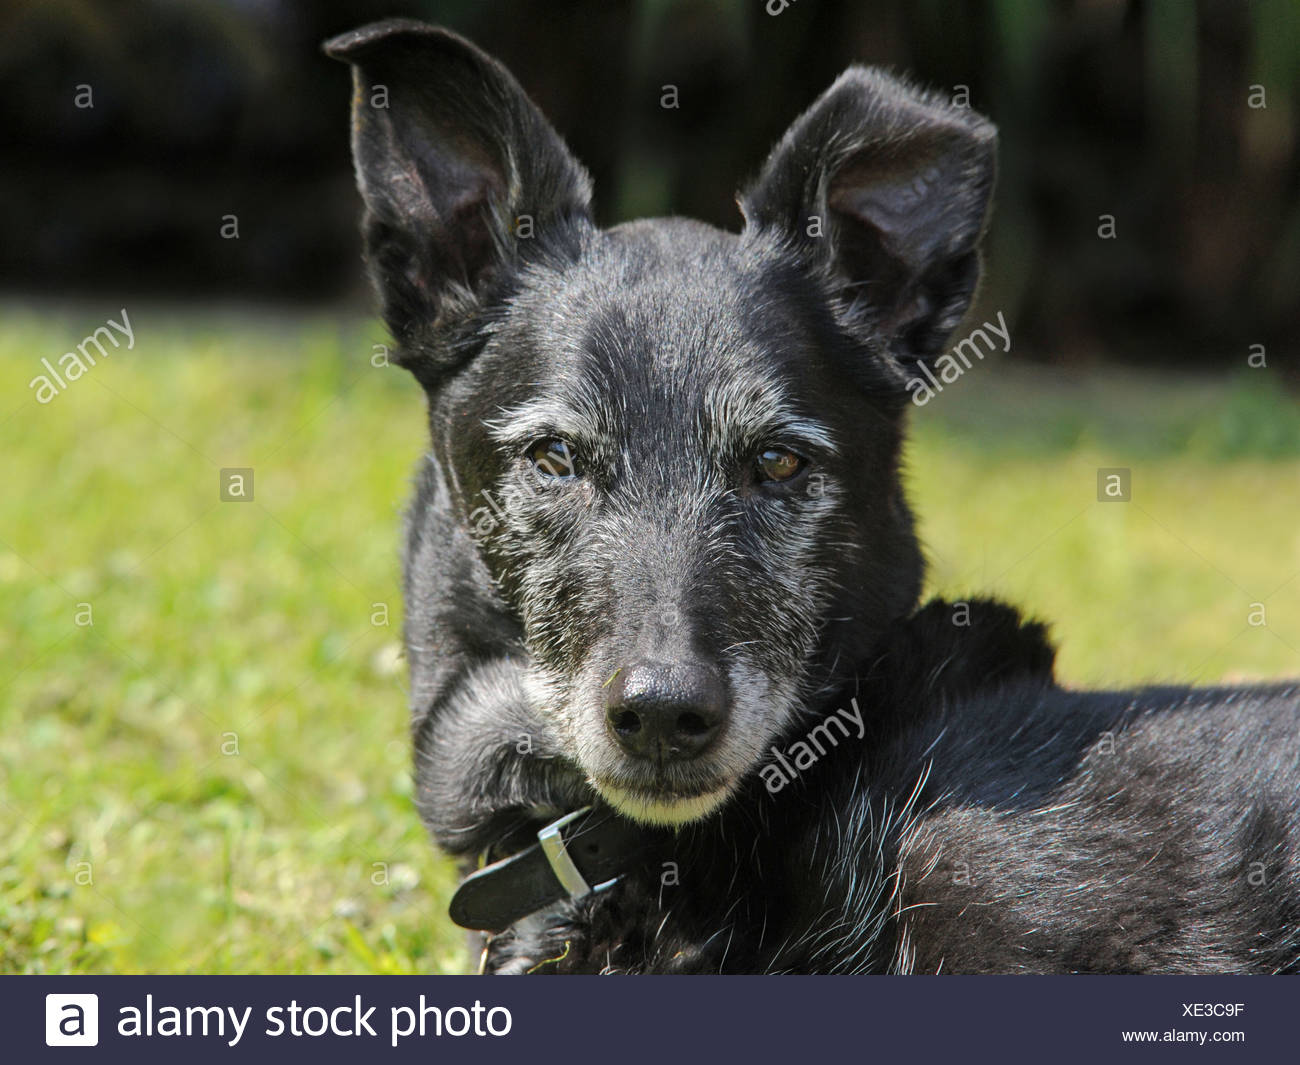 An old black dog - Stock Image